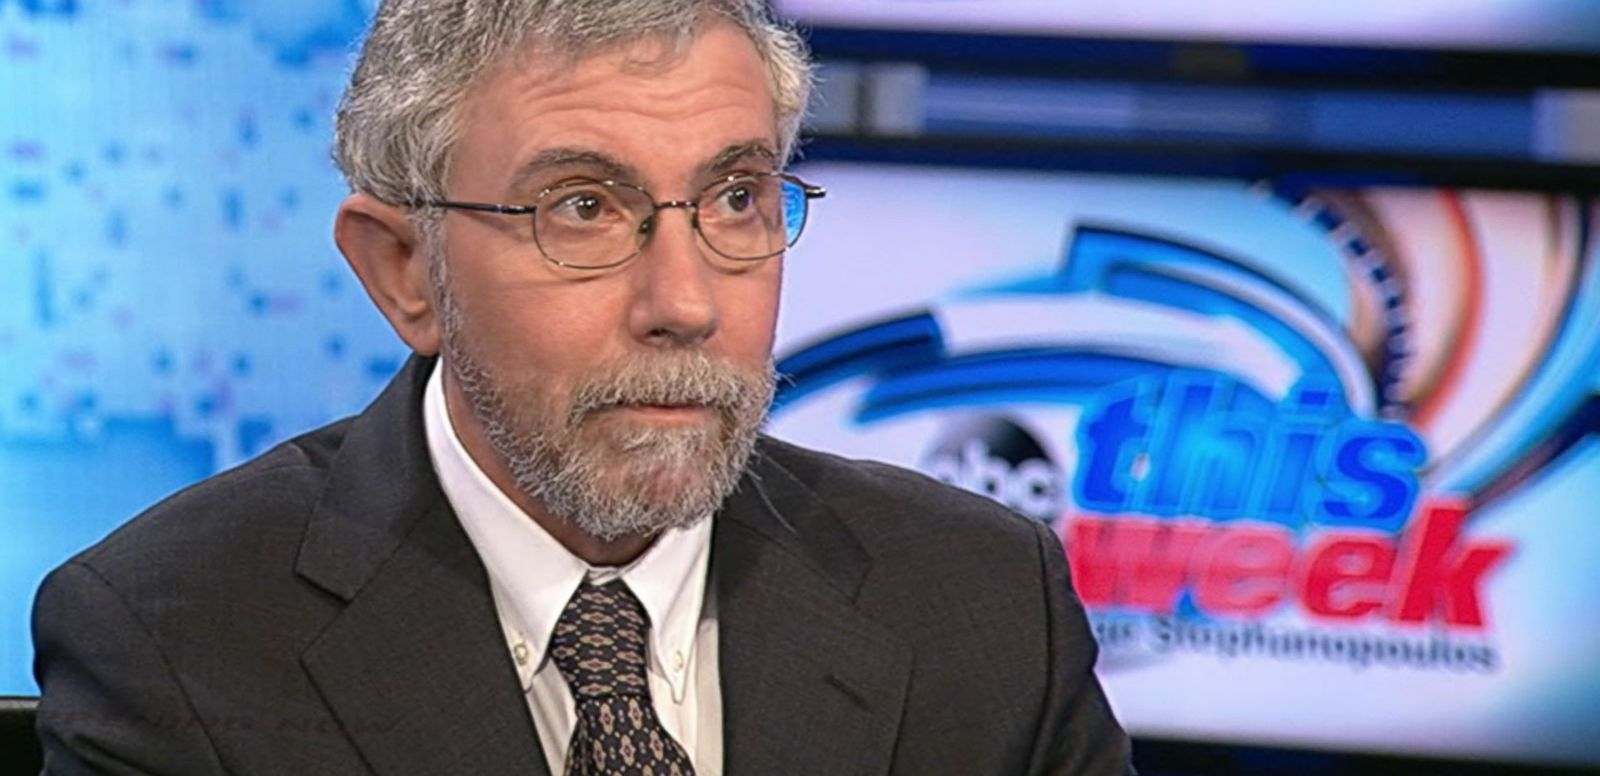 VIDEO: Paul Krugman on What's at Stake in Greece Debt Crisis